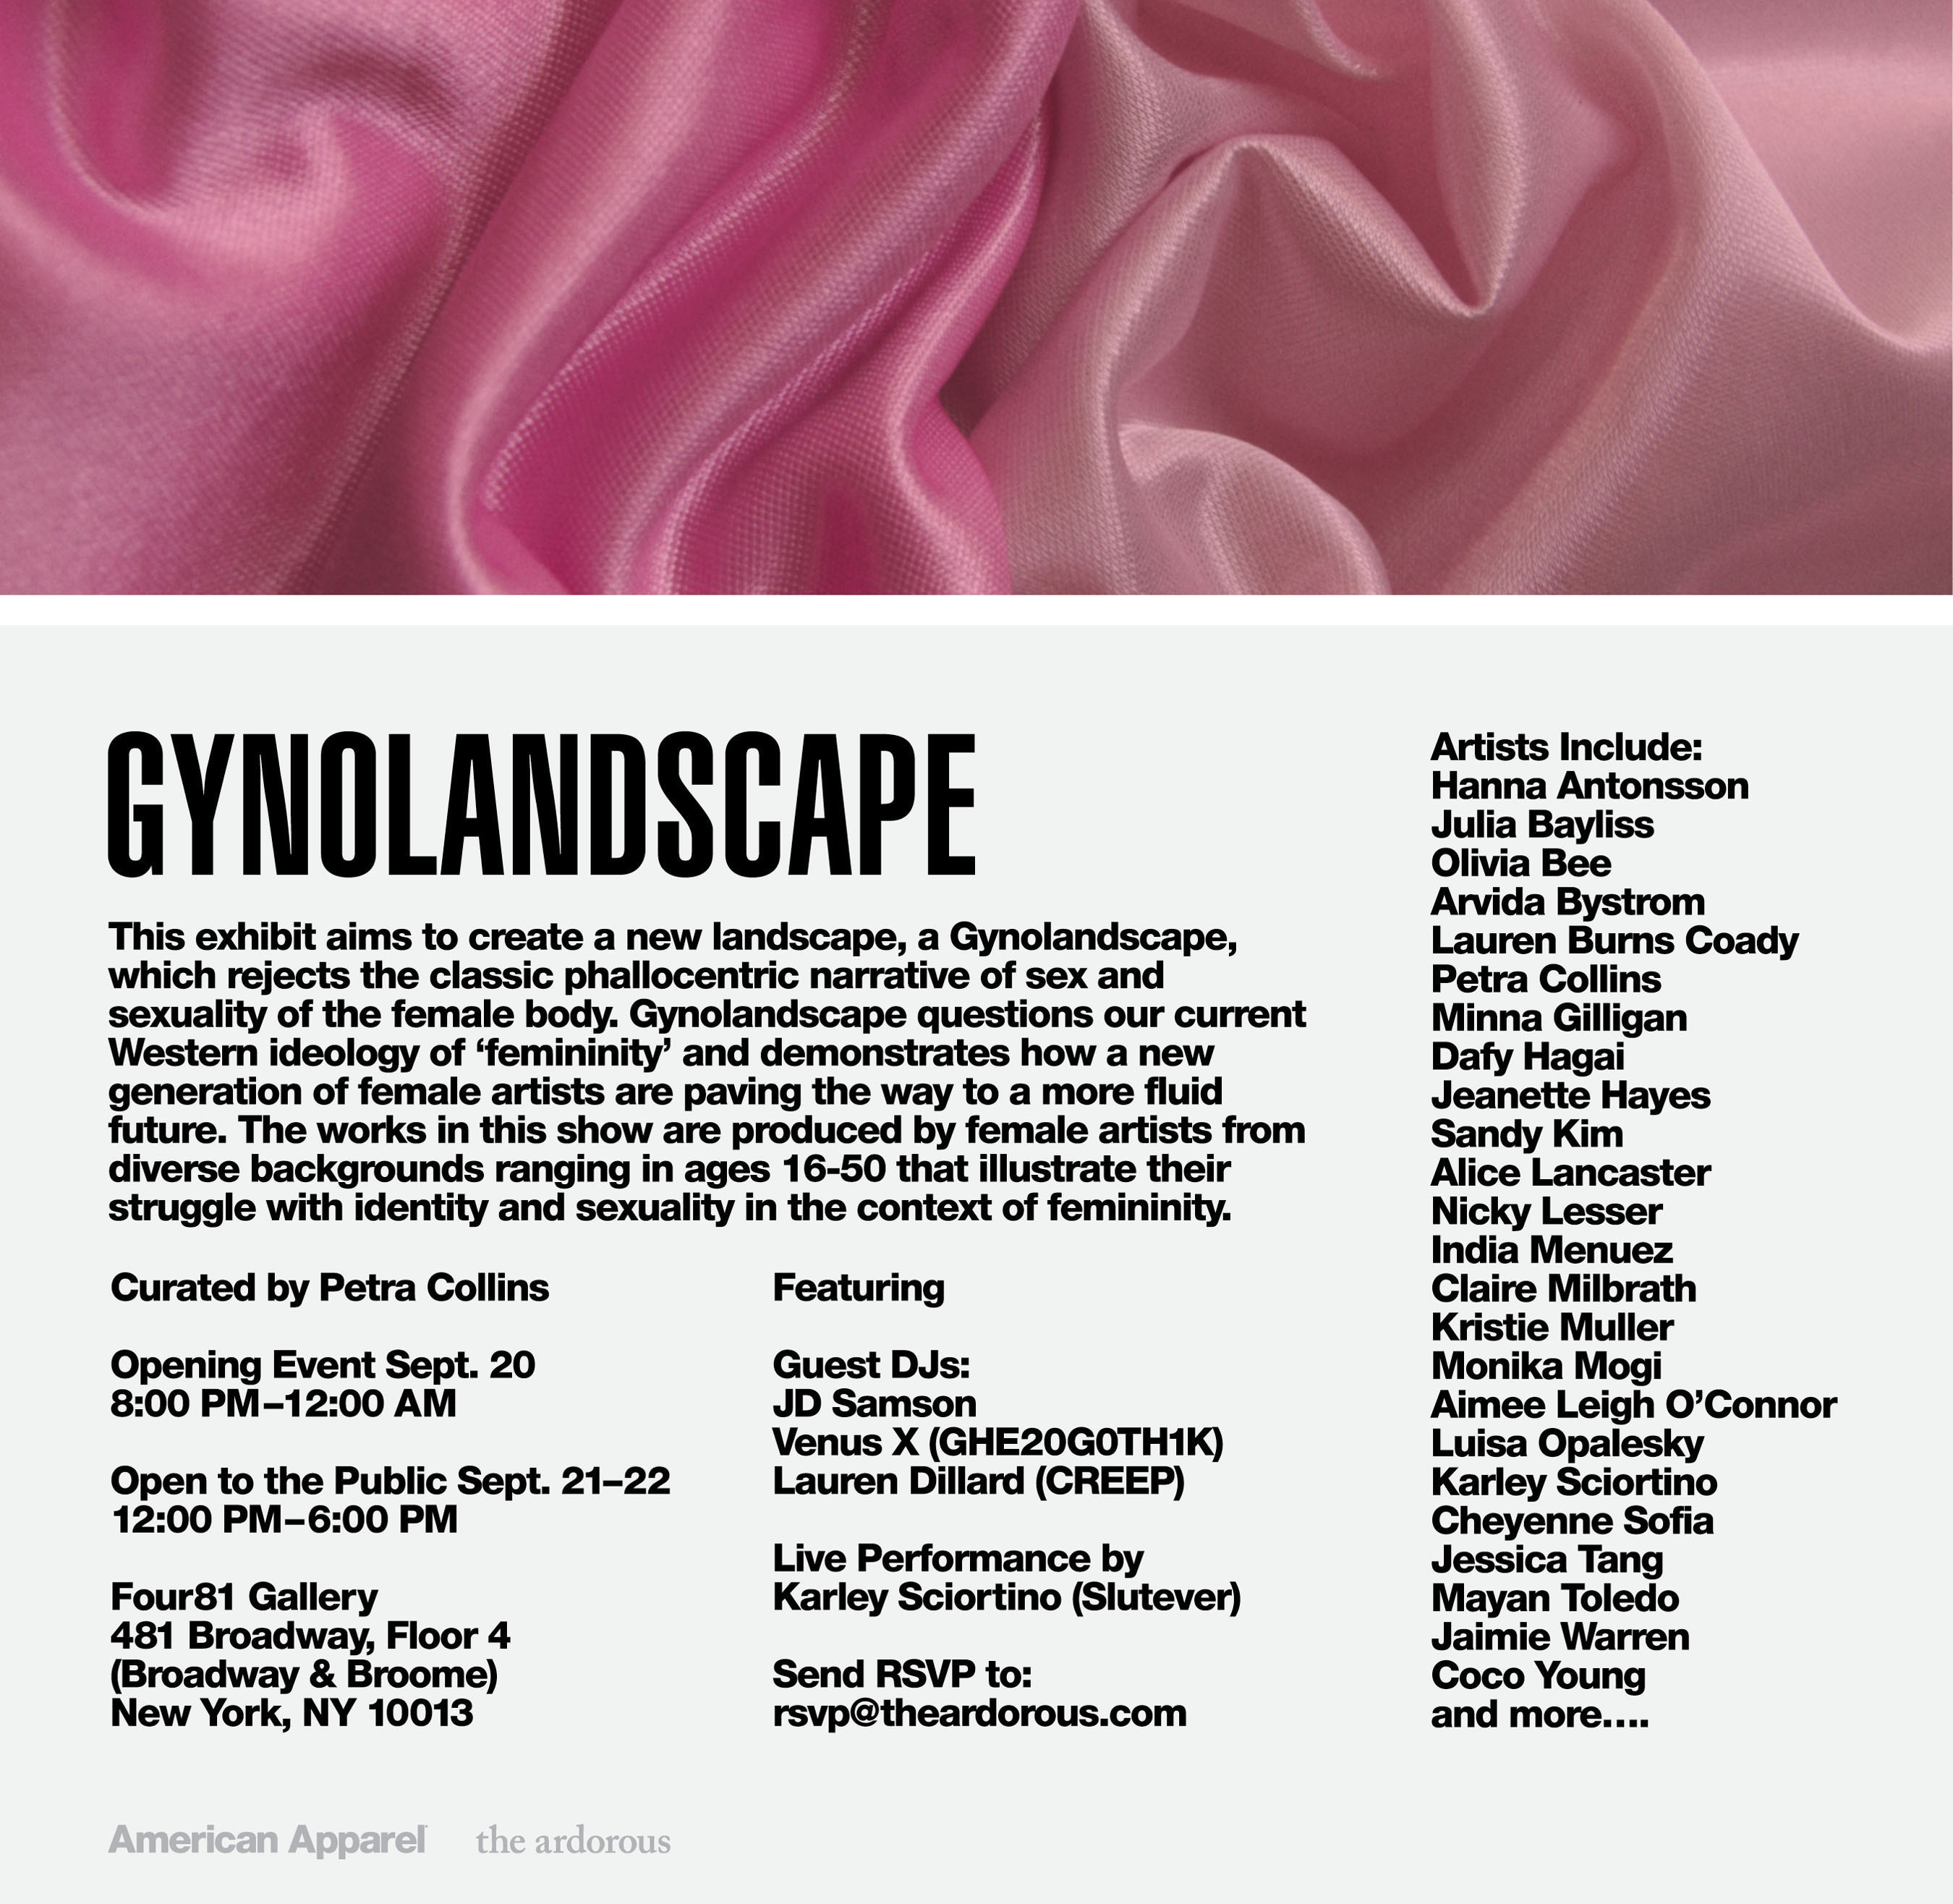 """American Apparel (Amex: APP), the vertically-integrated clothing manufacturer based in downtown Los Angeles, is pleased to announce its sponsorship of the new female-centric art exhibition, """"Gynolandscape."""" The all-girl show, curated by photographer--and longtime American Apparel employee--Petra Collins, will take place from September 20th to 23rd, at Four81 in SoHo, NYC. The exhibit, featuring a lineup of artists from The Ardorous, has been designed and cultivated by Petra Collins, a Toronto-born artist who has worked with Vogue Italia, Purple, Vice and Rookie, and is still a contributing photographer for American Apparel. (PRNewsFoto/American Apparel) (PRNewsFoto/AMERICAN APPAREL)"""